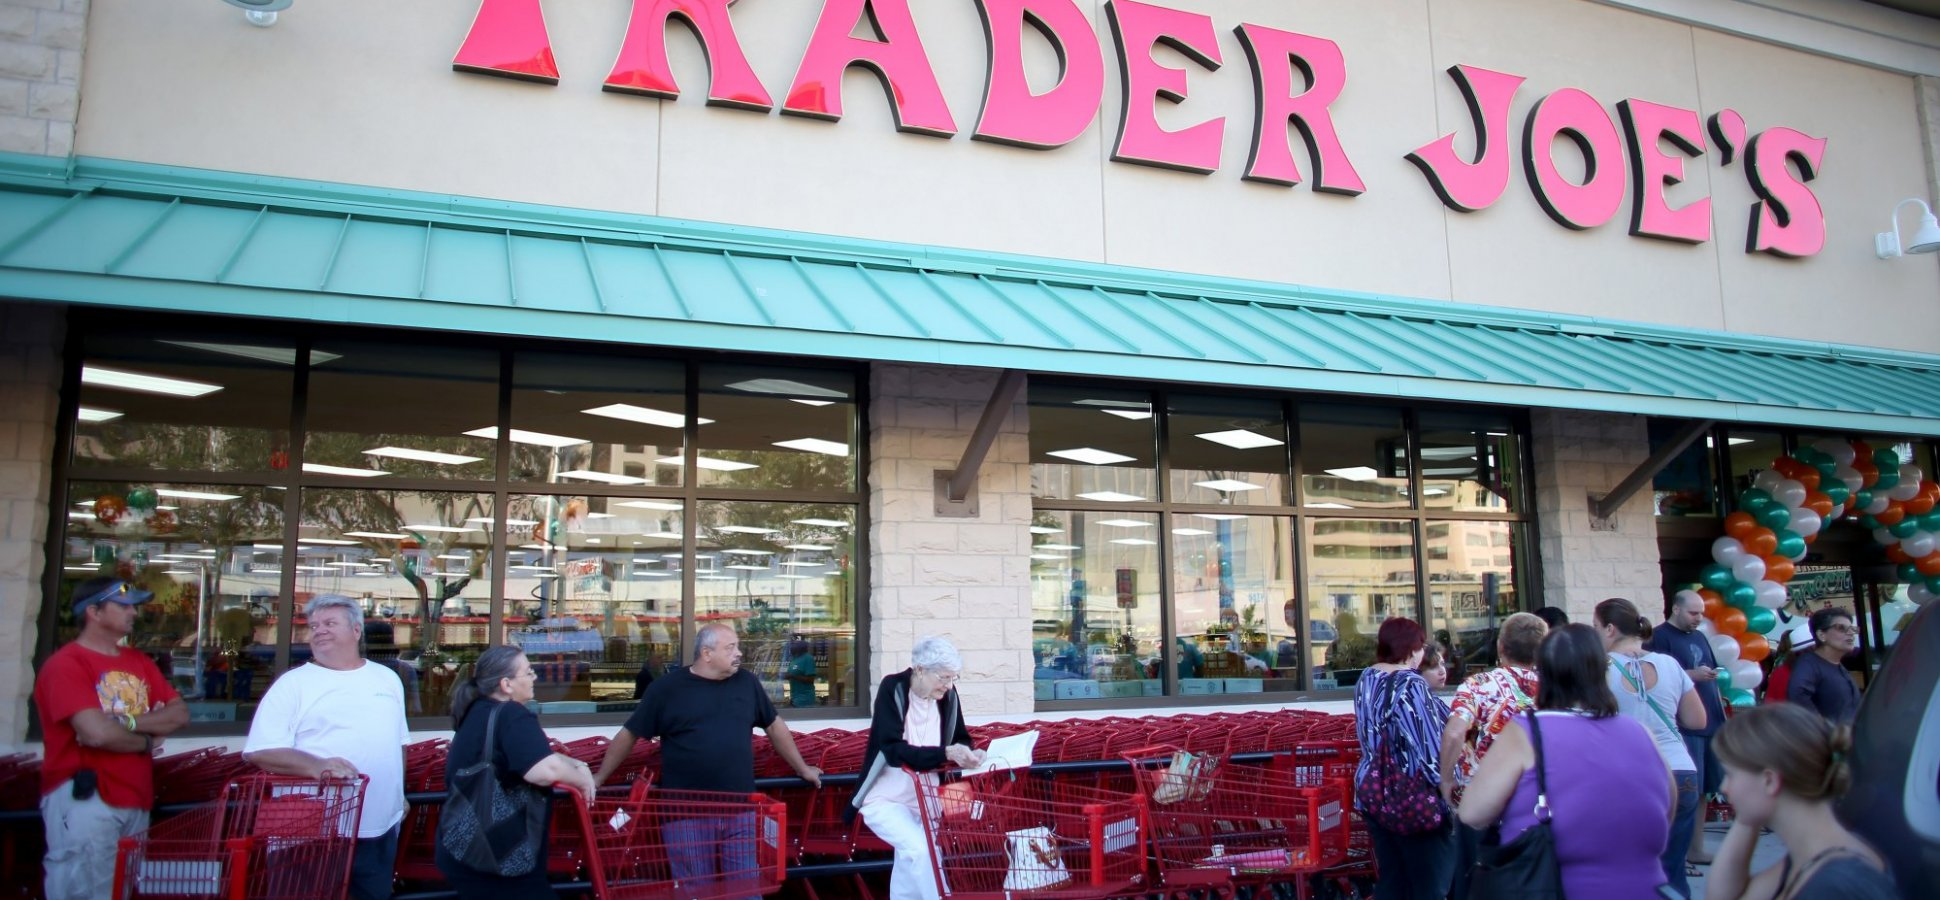 How Trader Joe's Built an Iconic Brand Through Employee Engagement